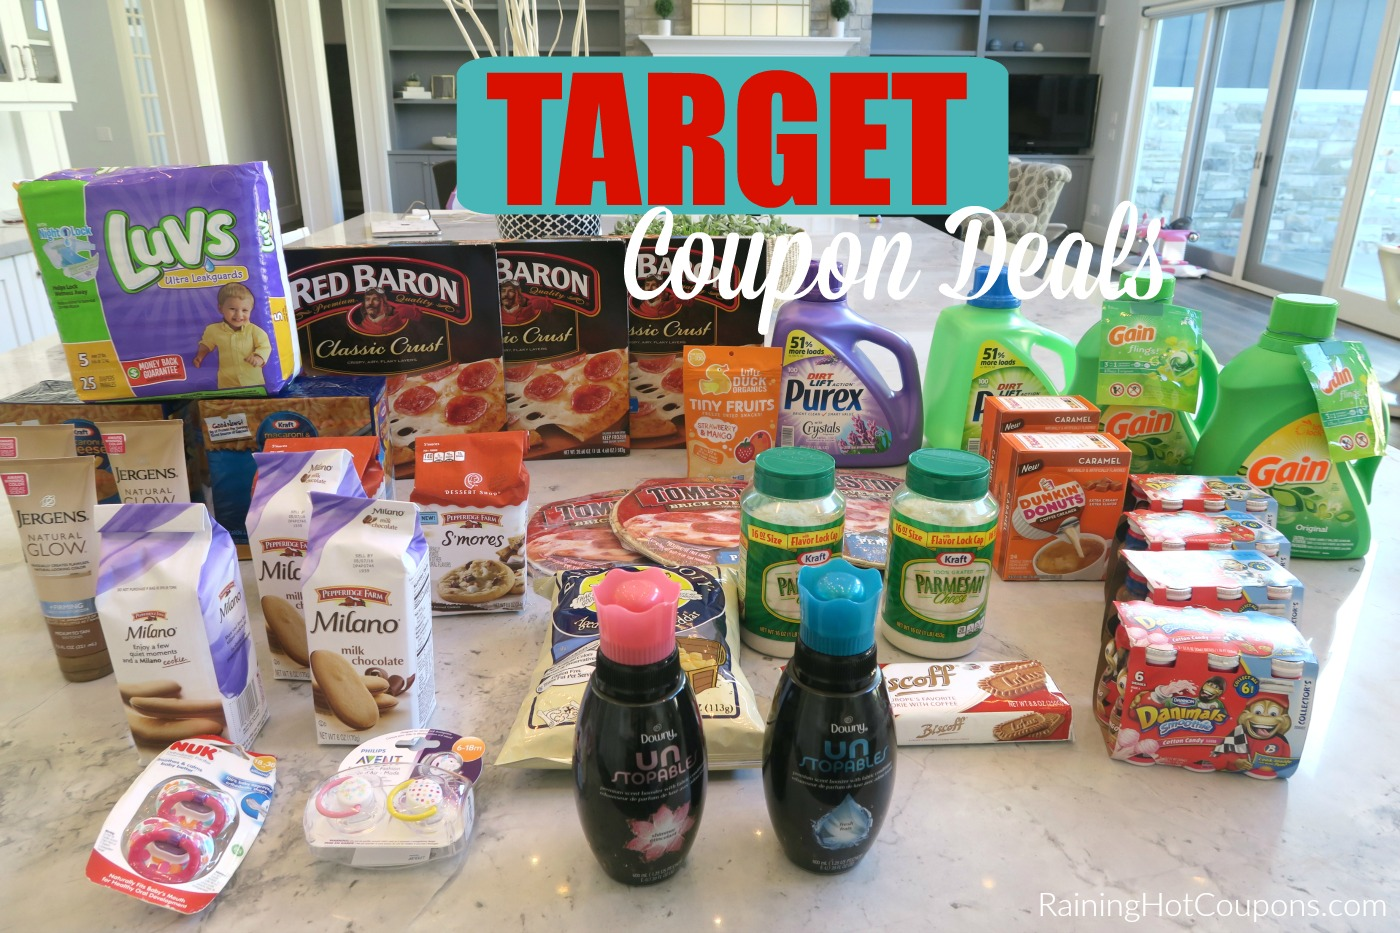 Target Shopping Video 5/1 – 5/7 (Lots of Easy Deals!)